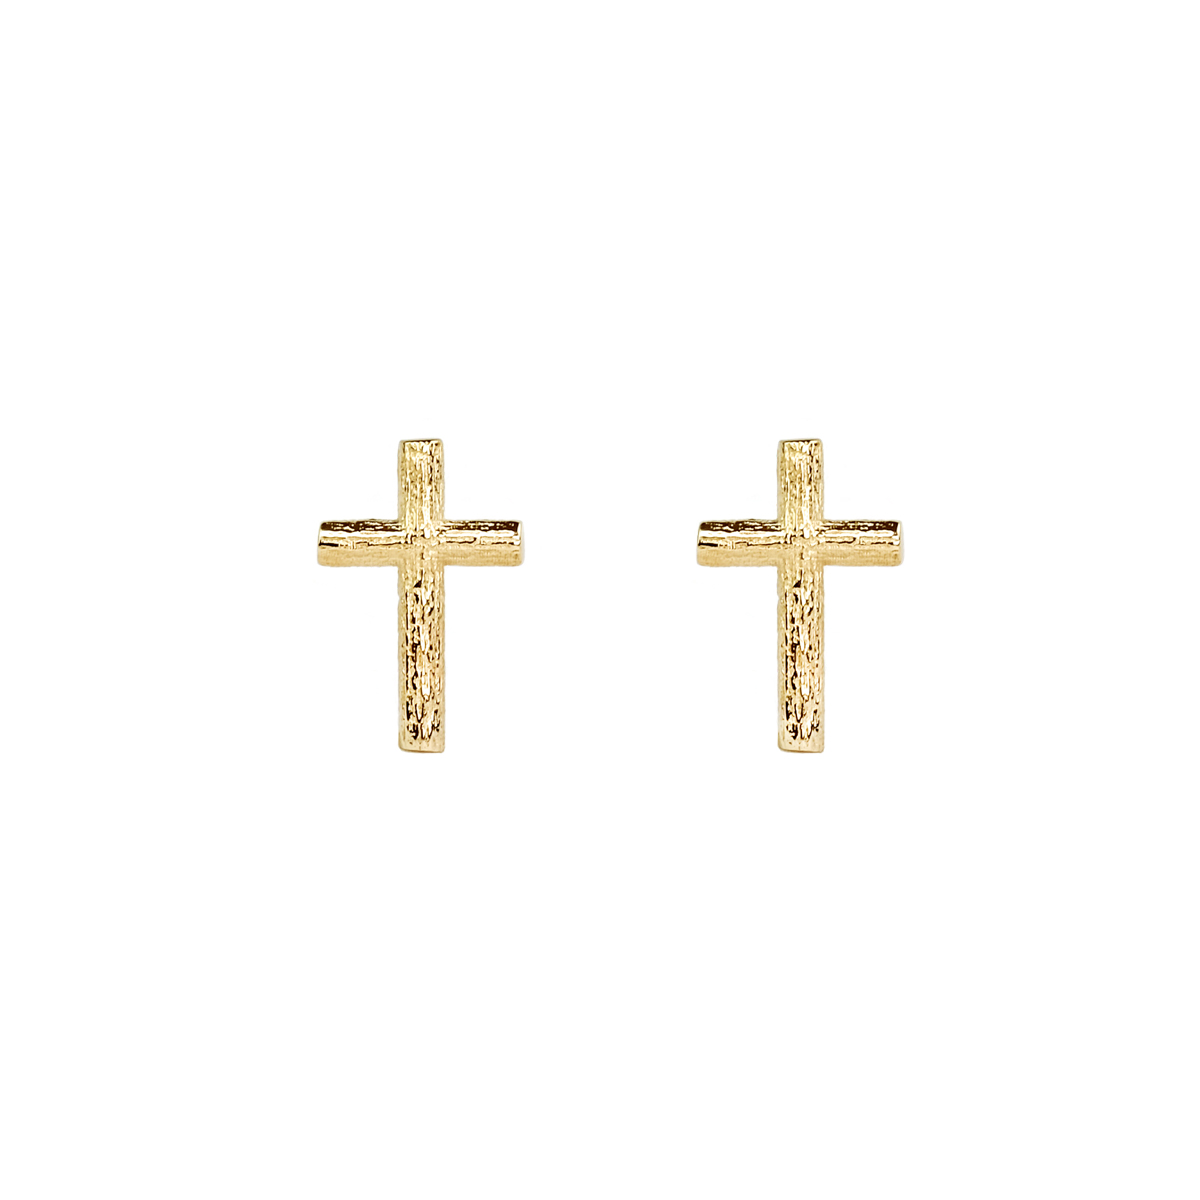 BRANCH CROSS PIN EARRINGS GOLD in the group NEWS at EMMA ISRAELSSON (ear105)